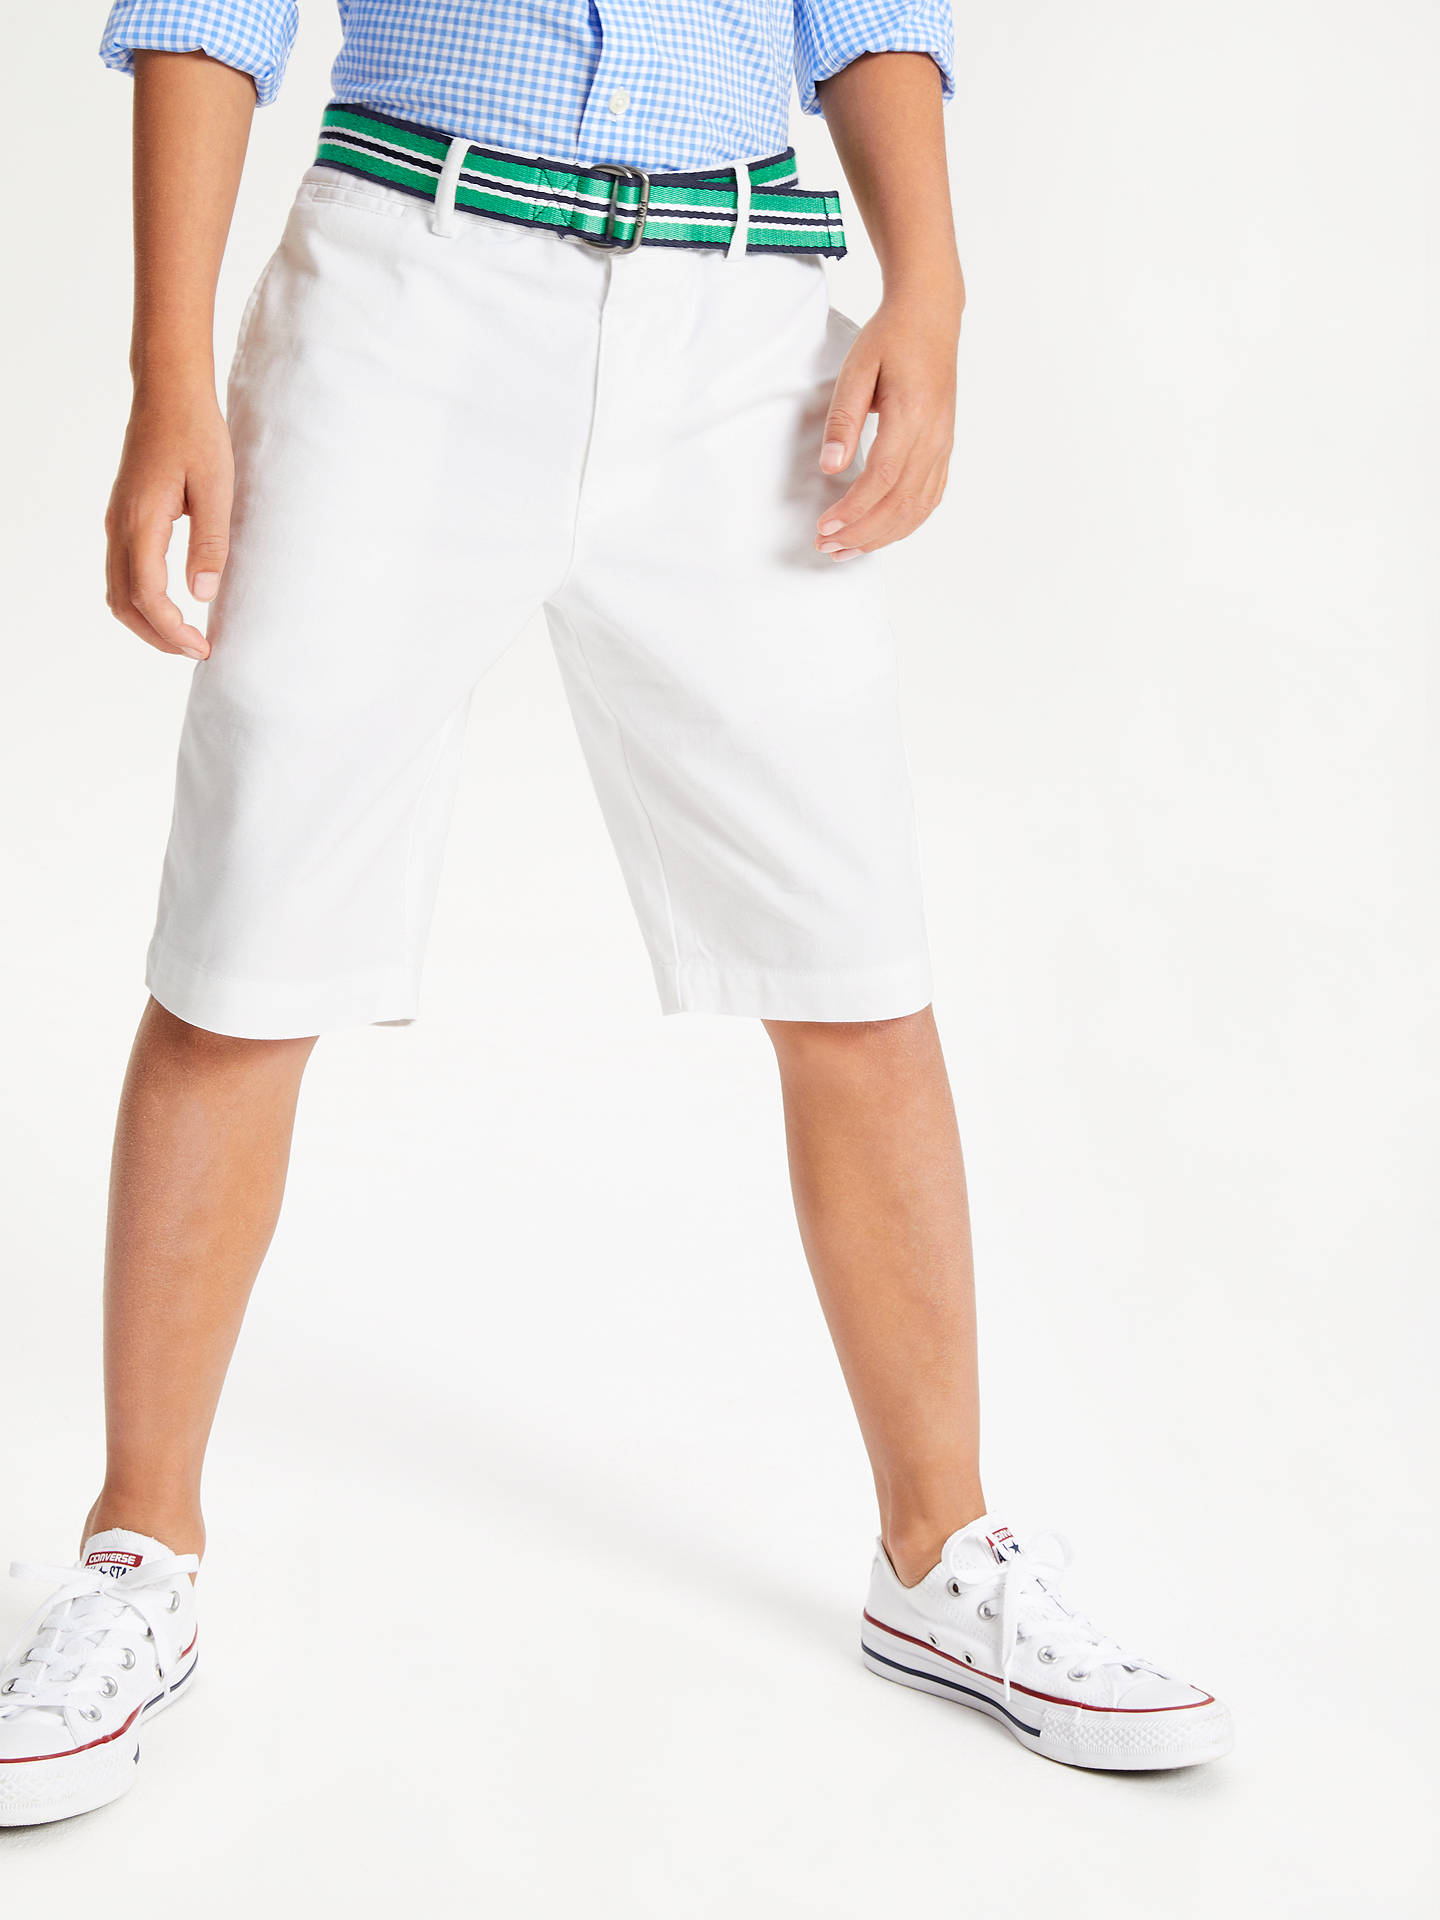 sale retailer discount up to 60% cheaper Polo Ralph Lauren Boys' Shorts, White